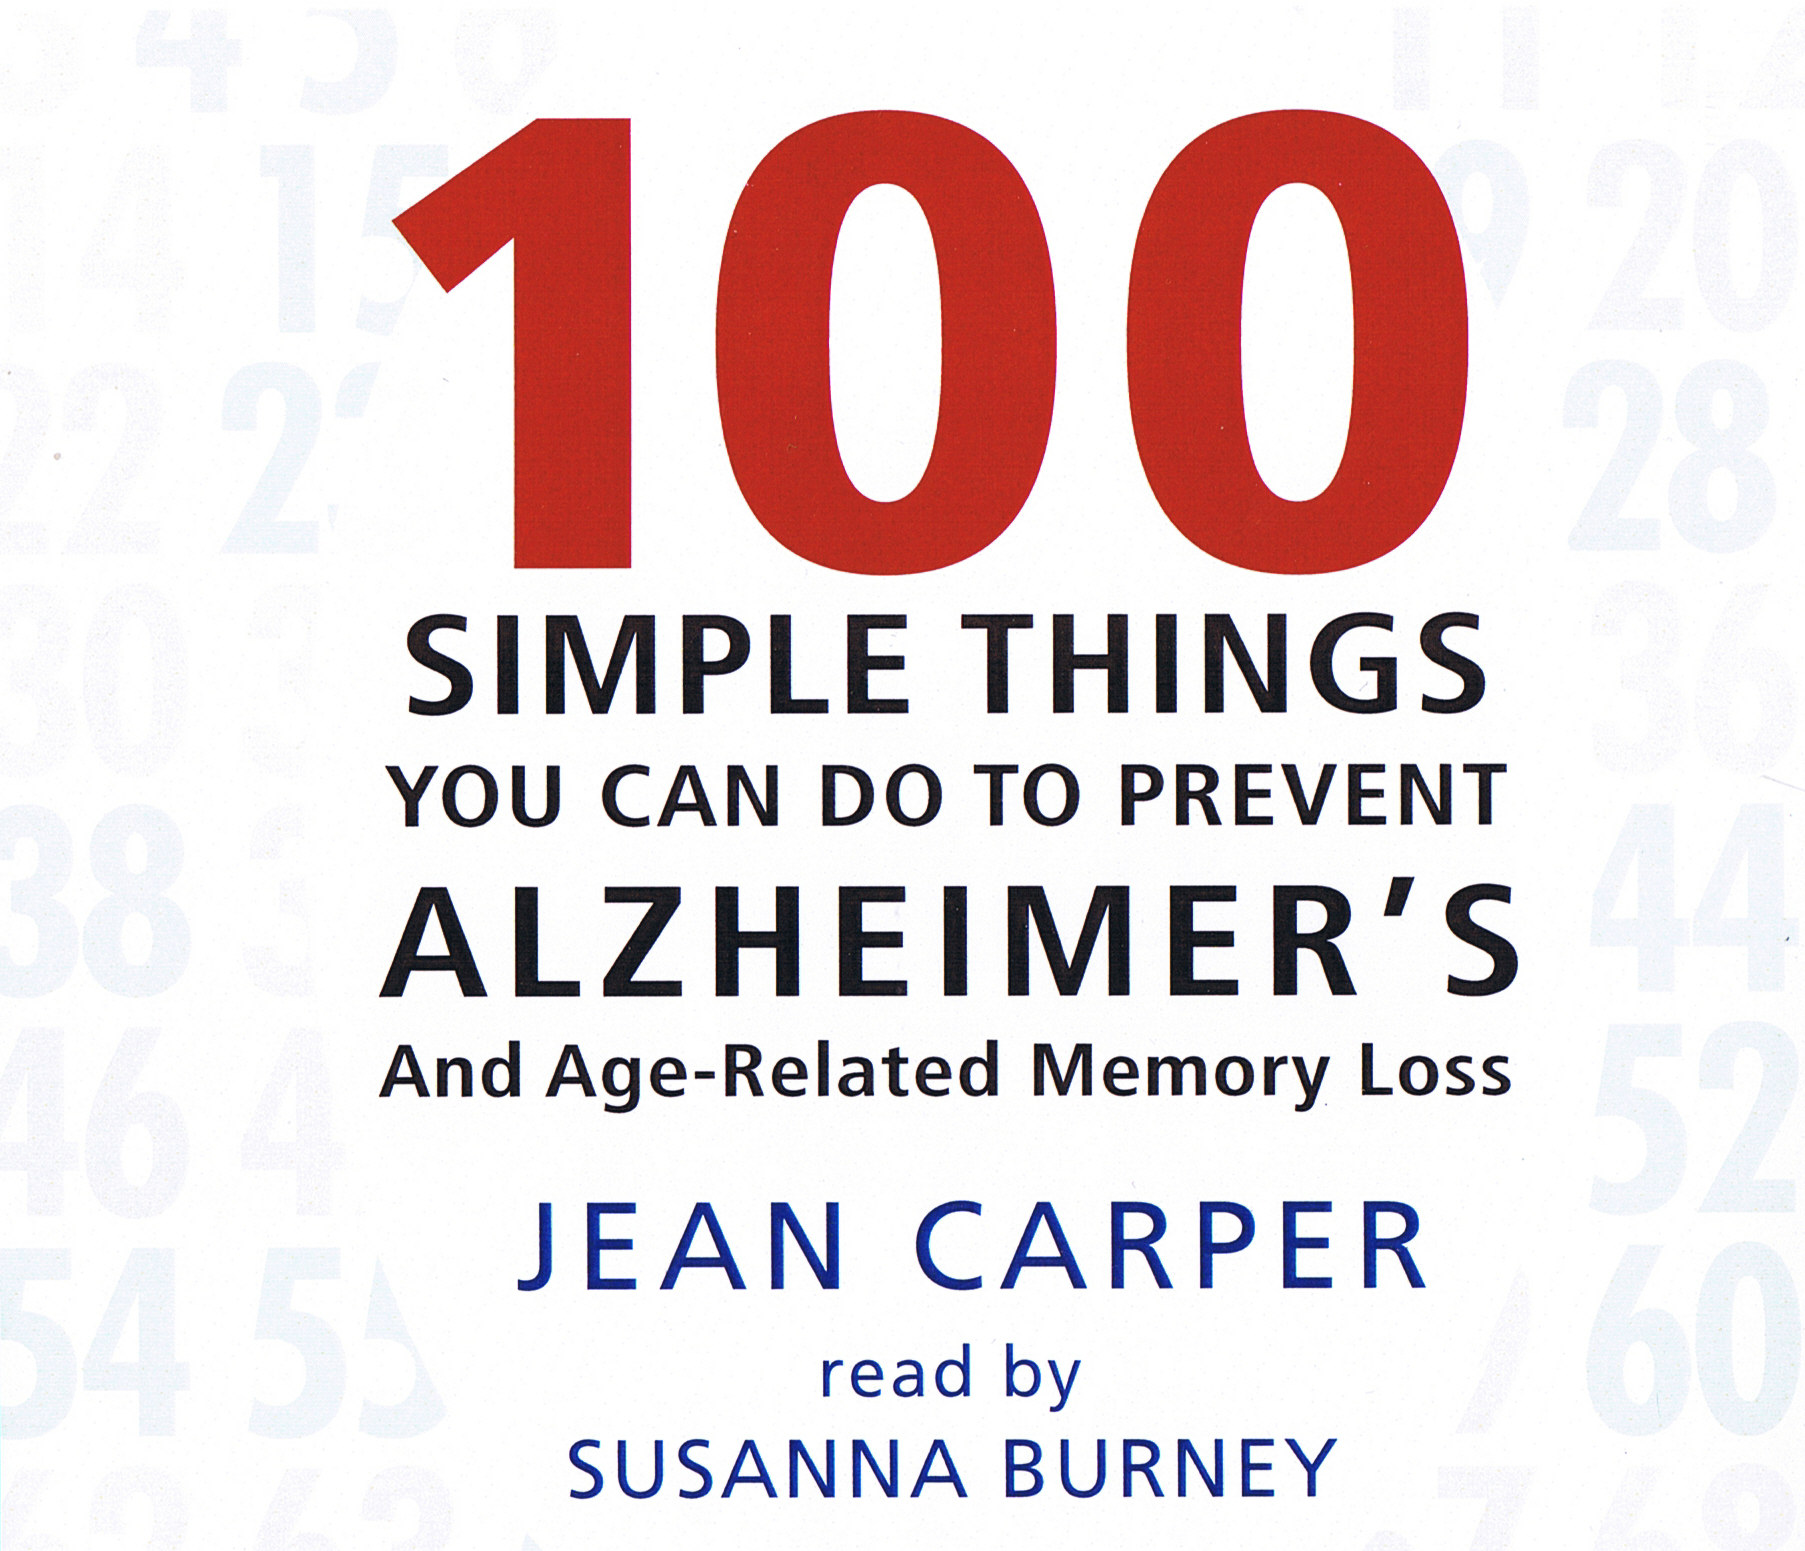 100 Simple Things You Can Do To Prevent Alzheimer's [DD]